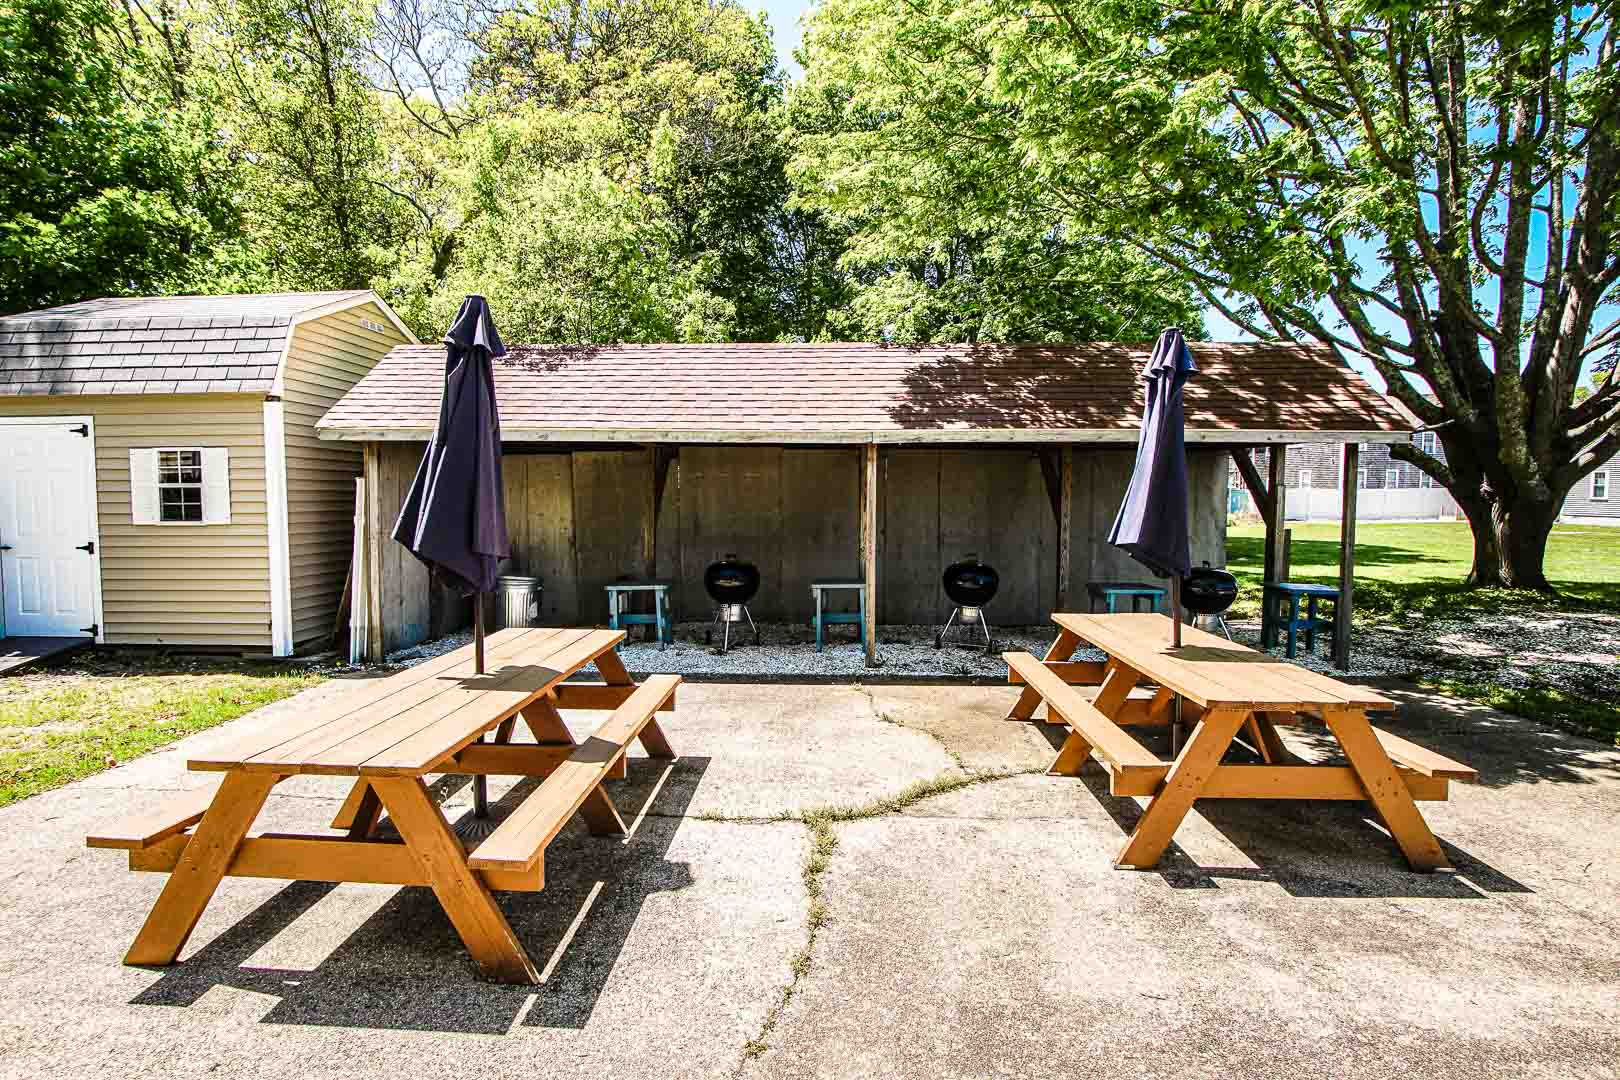 A tranquil picnic area at VRI's Cape Winds Resort in Massachusetts.